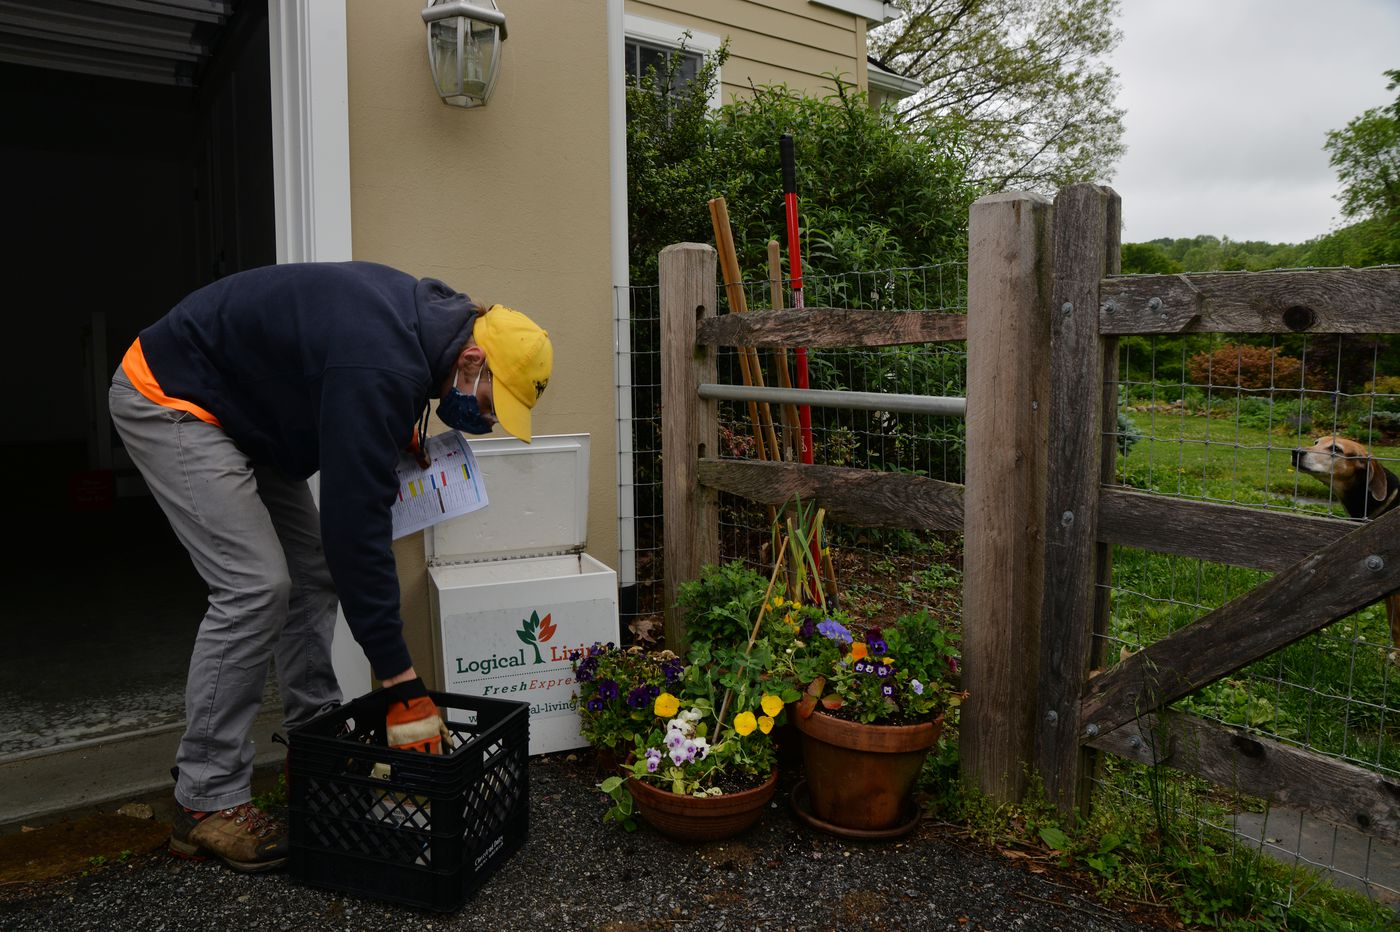 Coronavirus has sparked a comeback for old-fashioned milk delivery in the Philly suburbs